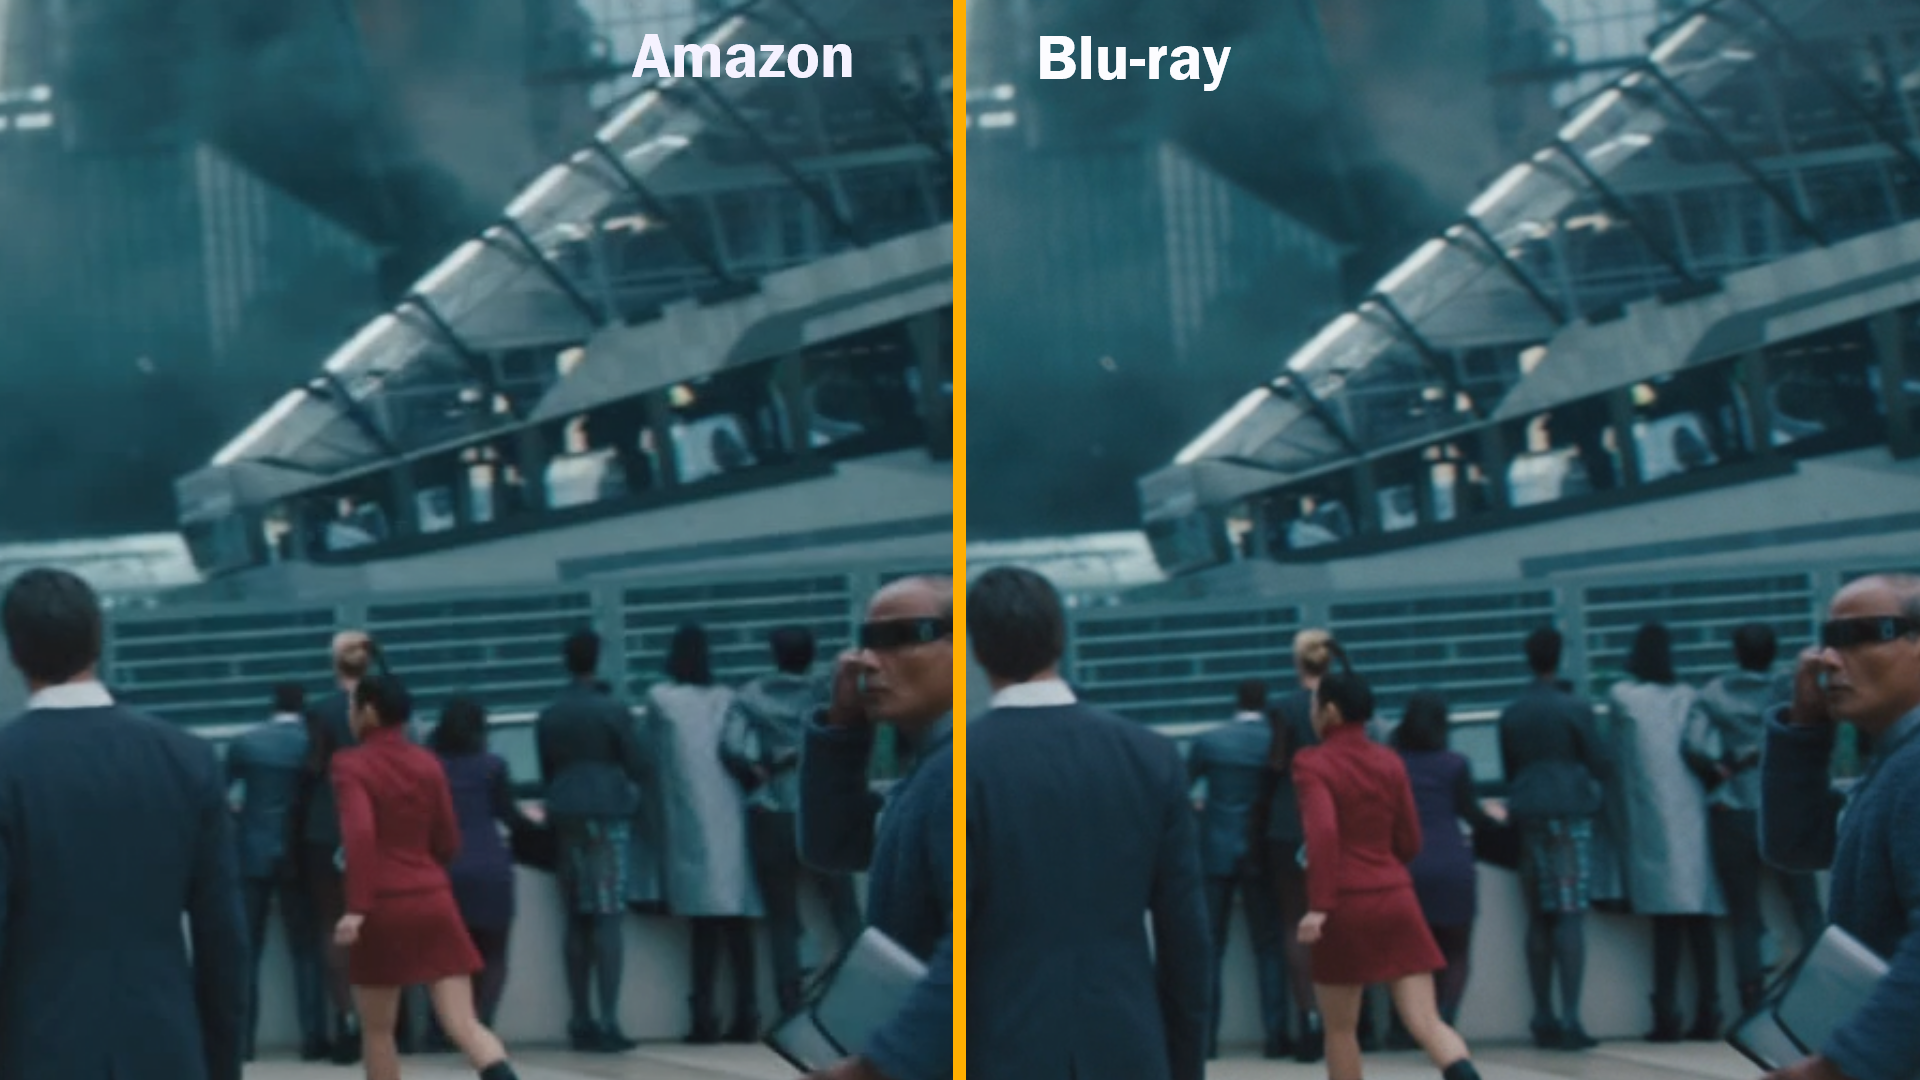 bluray vs streaming � which has the best quality